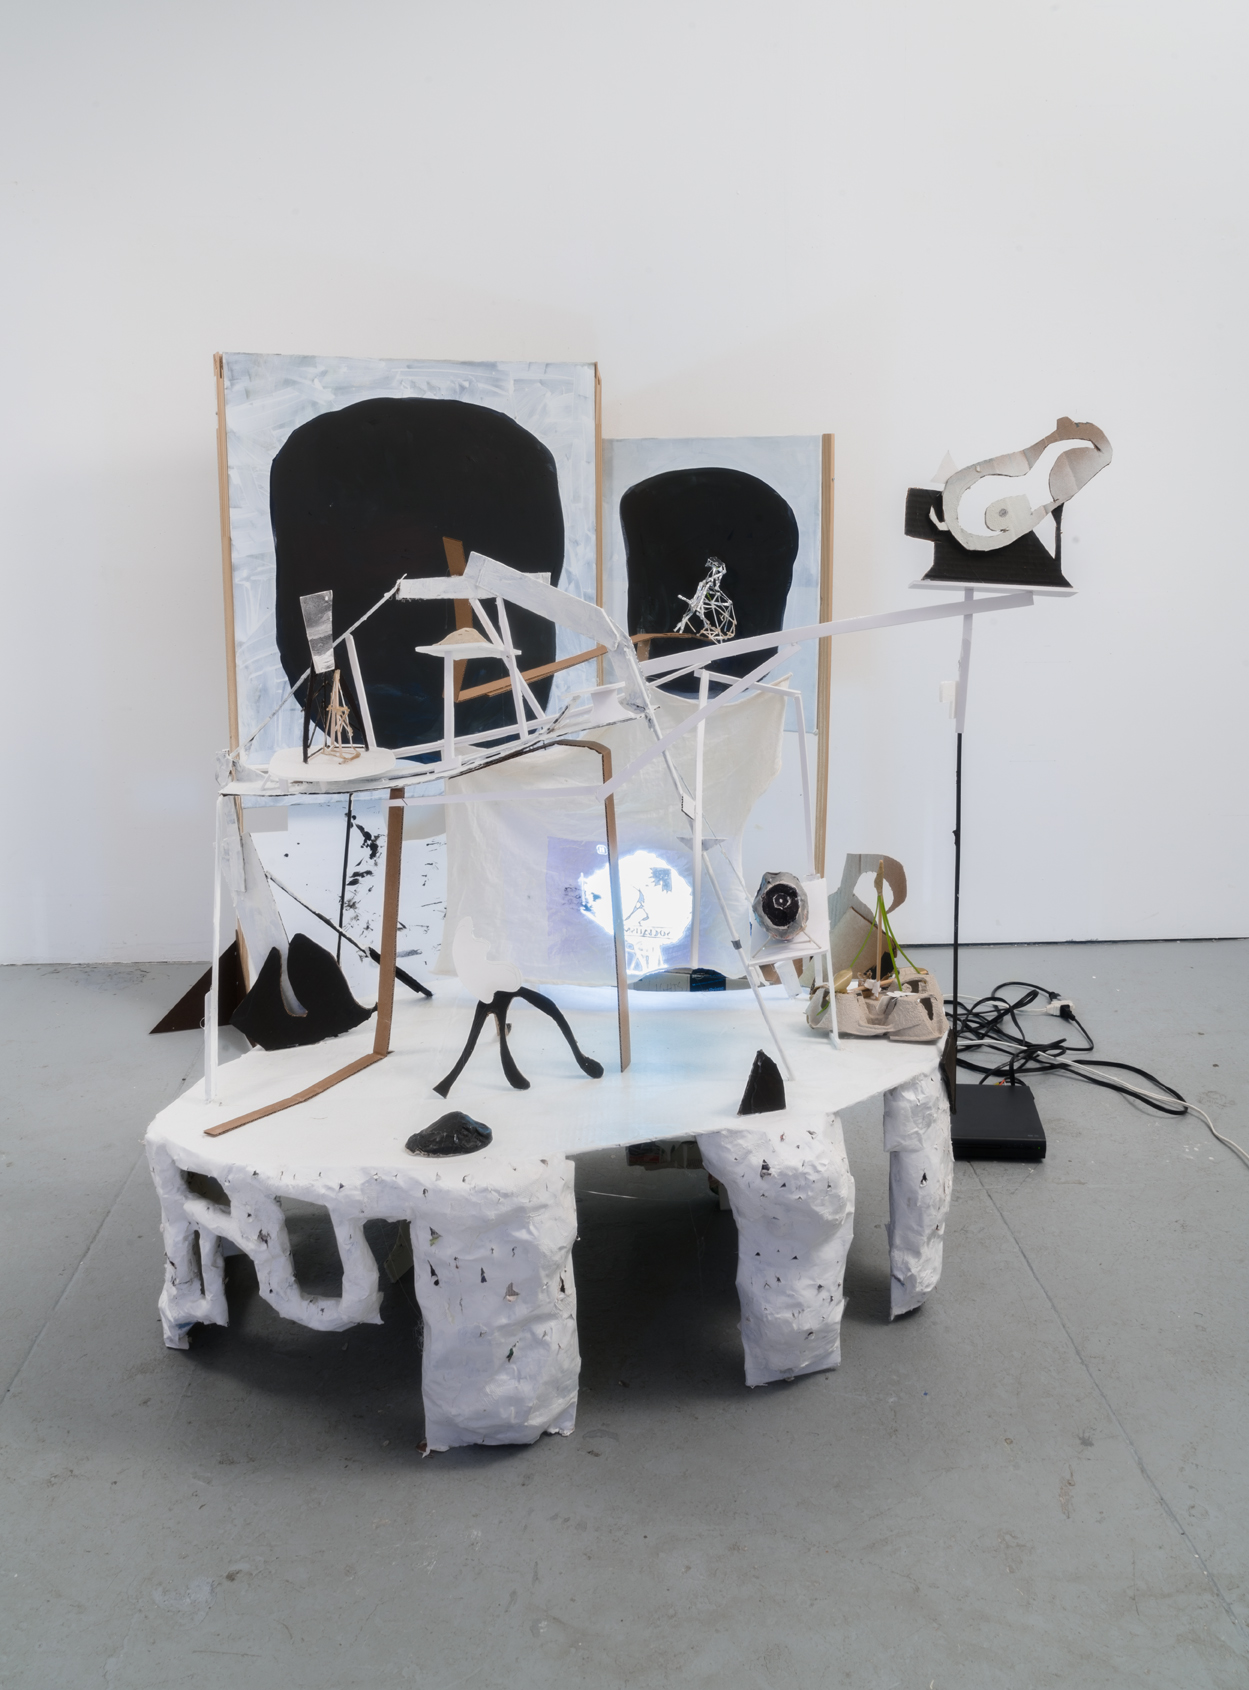 This Will Not Be Us, 2017 Scavenged Material Dimensions Variable